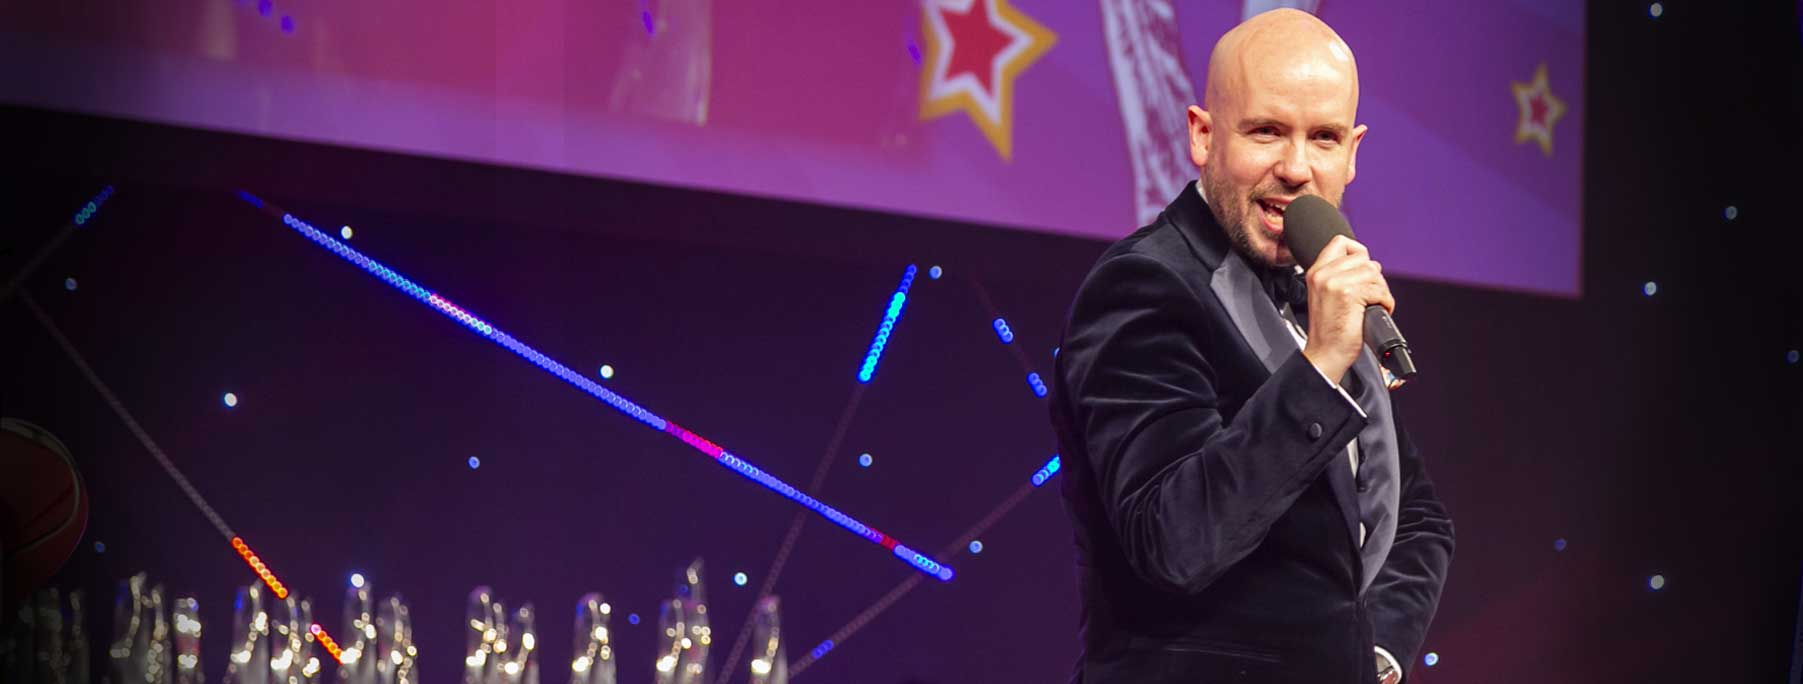 The Negotiator Awards National Estate and Letting Agent Awards Tom Allen image